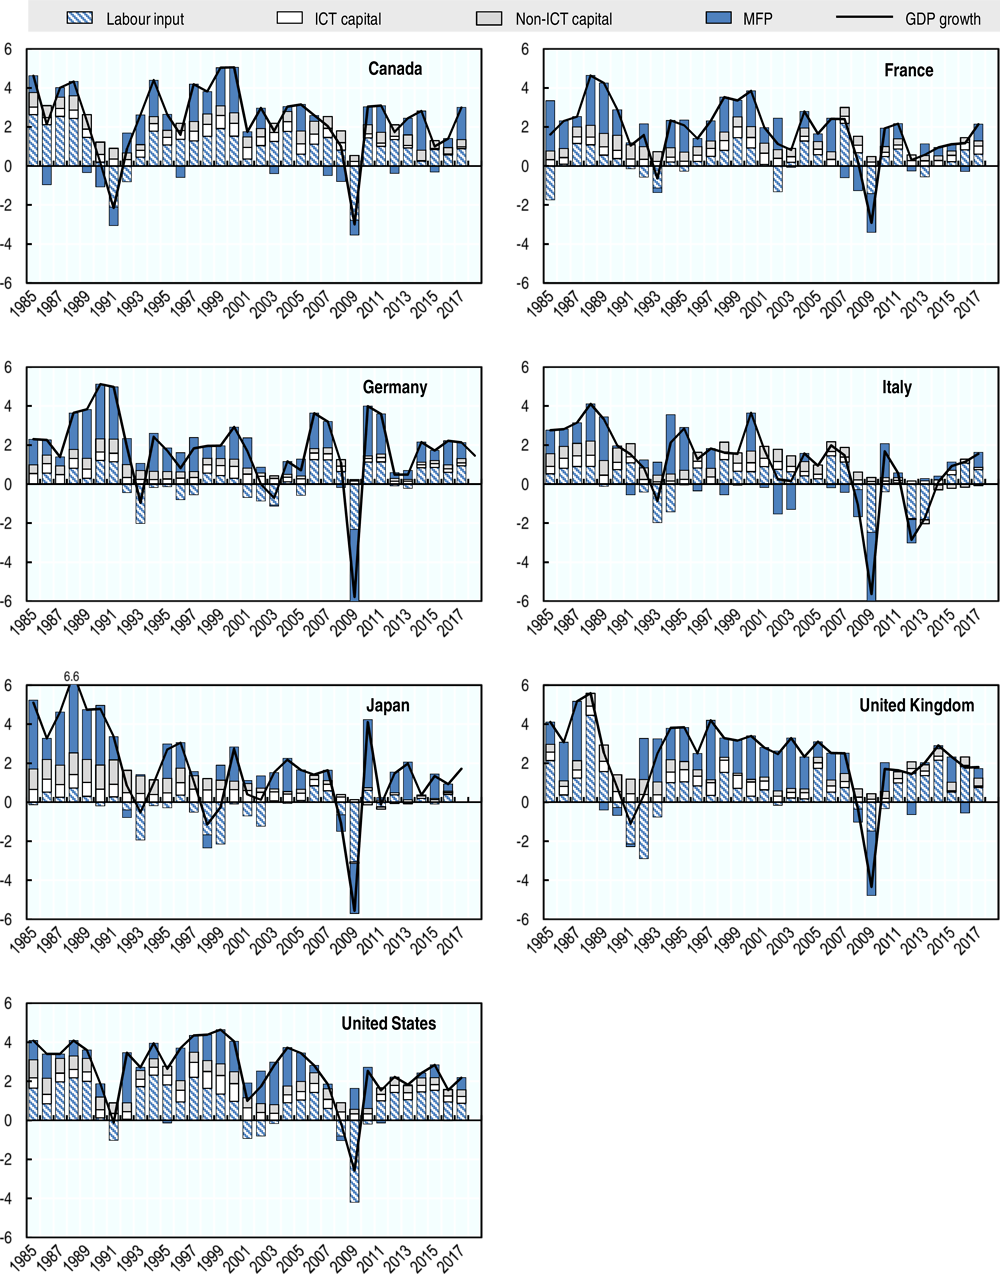 Figure 7.9. Contributions to GDP growth over time in G7 countries